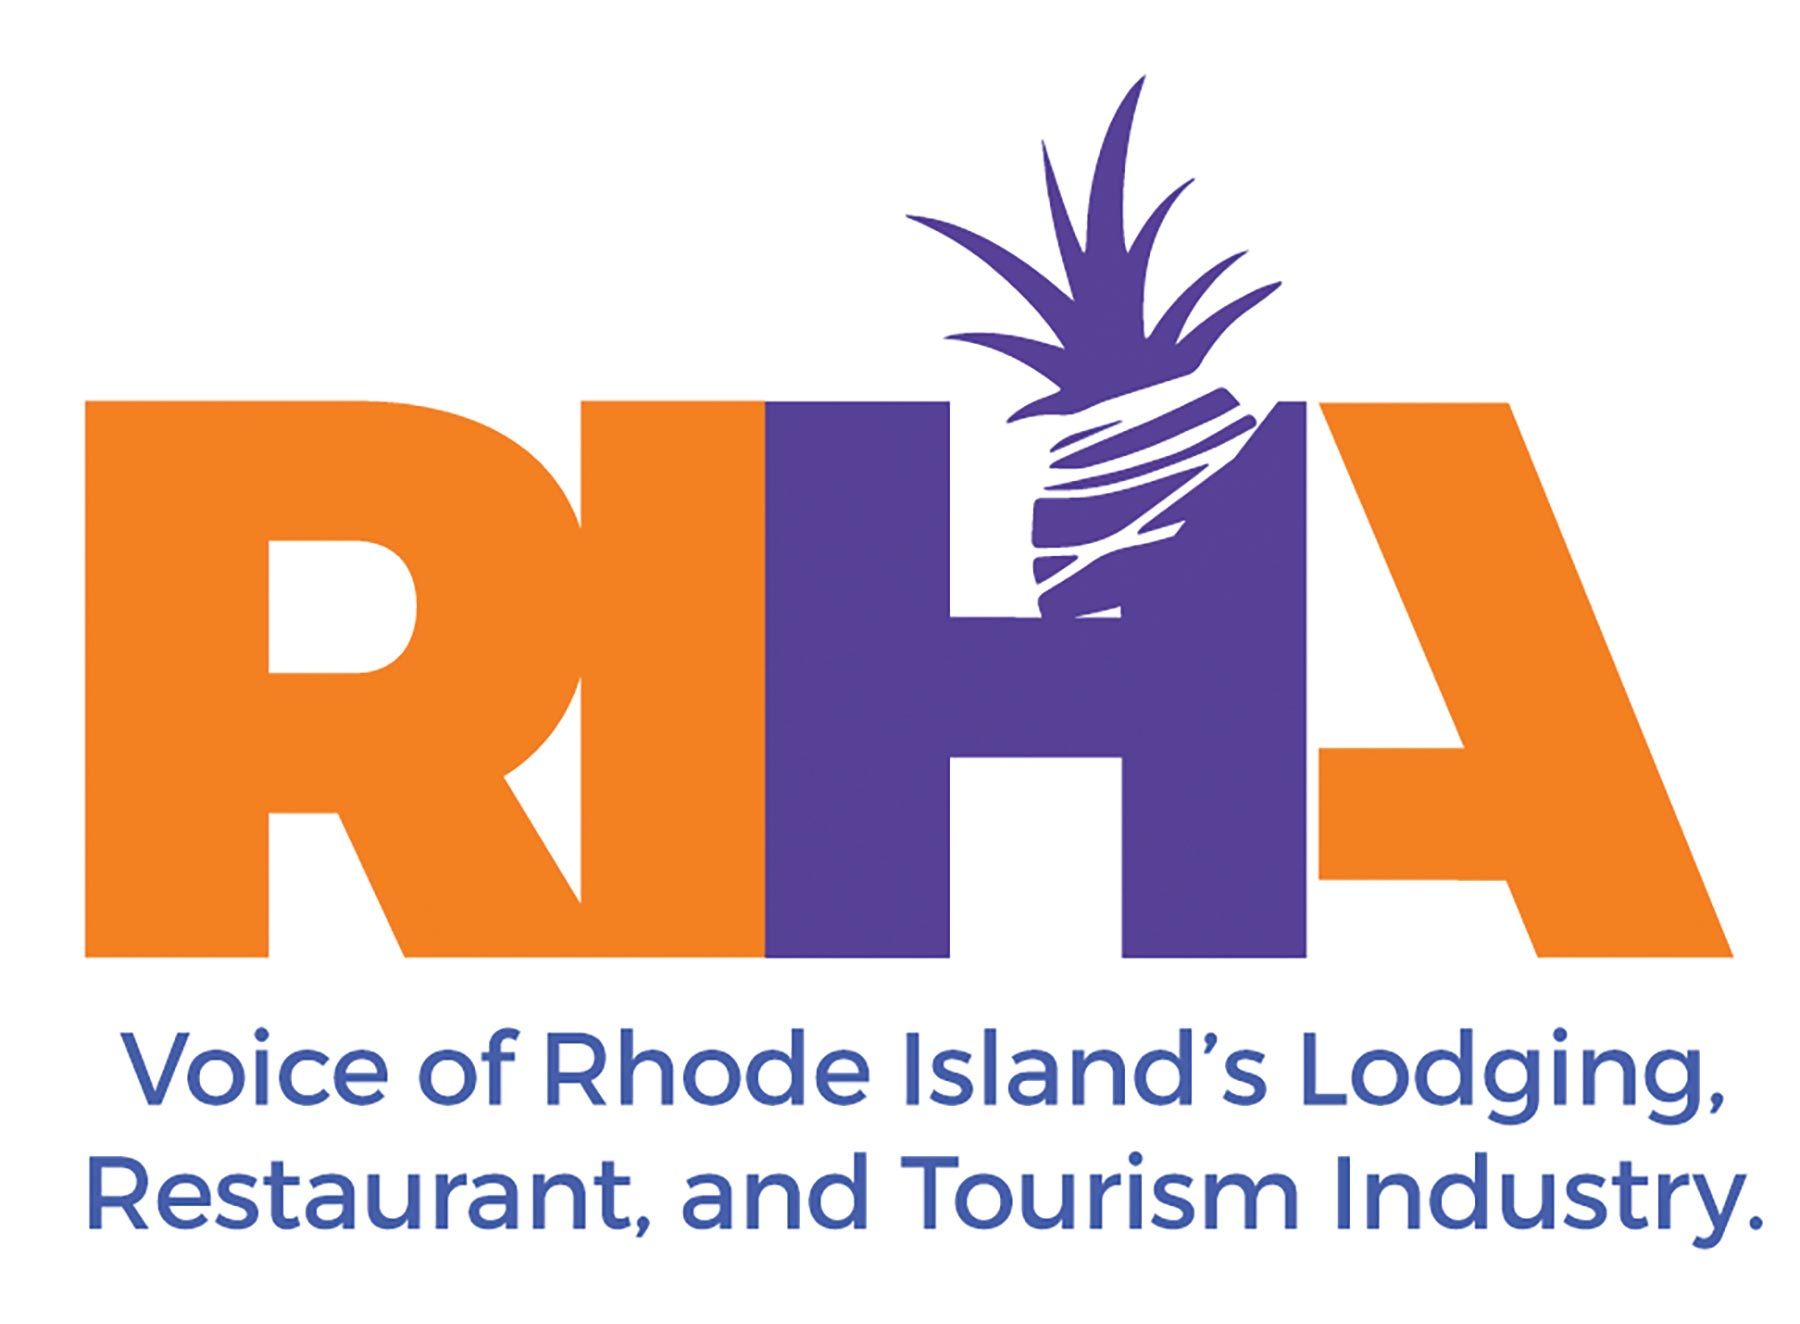 RIHA Column: I Know I'm Not a Member, But…